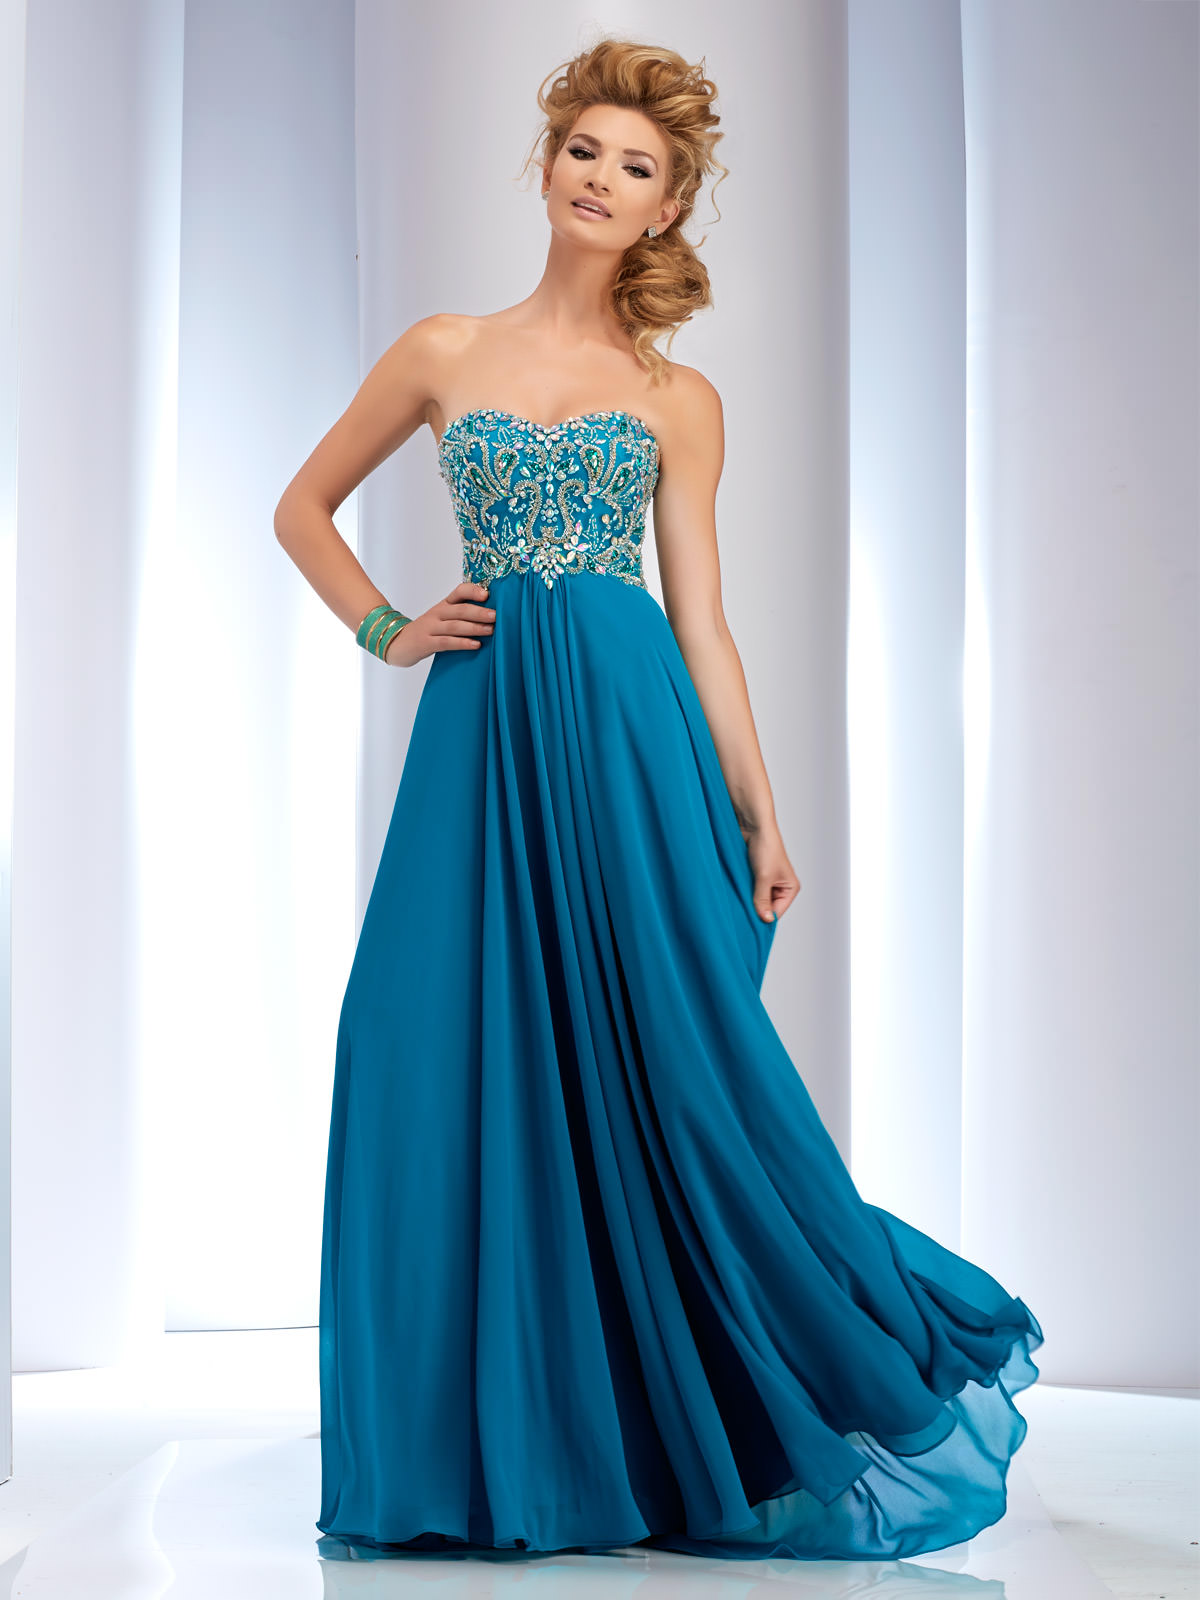 Prom Dresses Promgirl - Boutique Prom Dresses